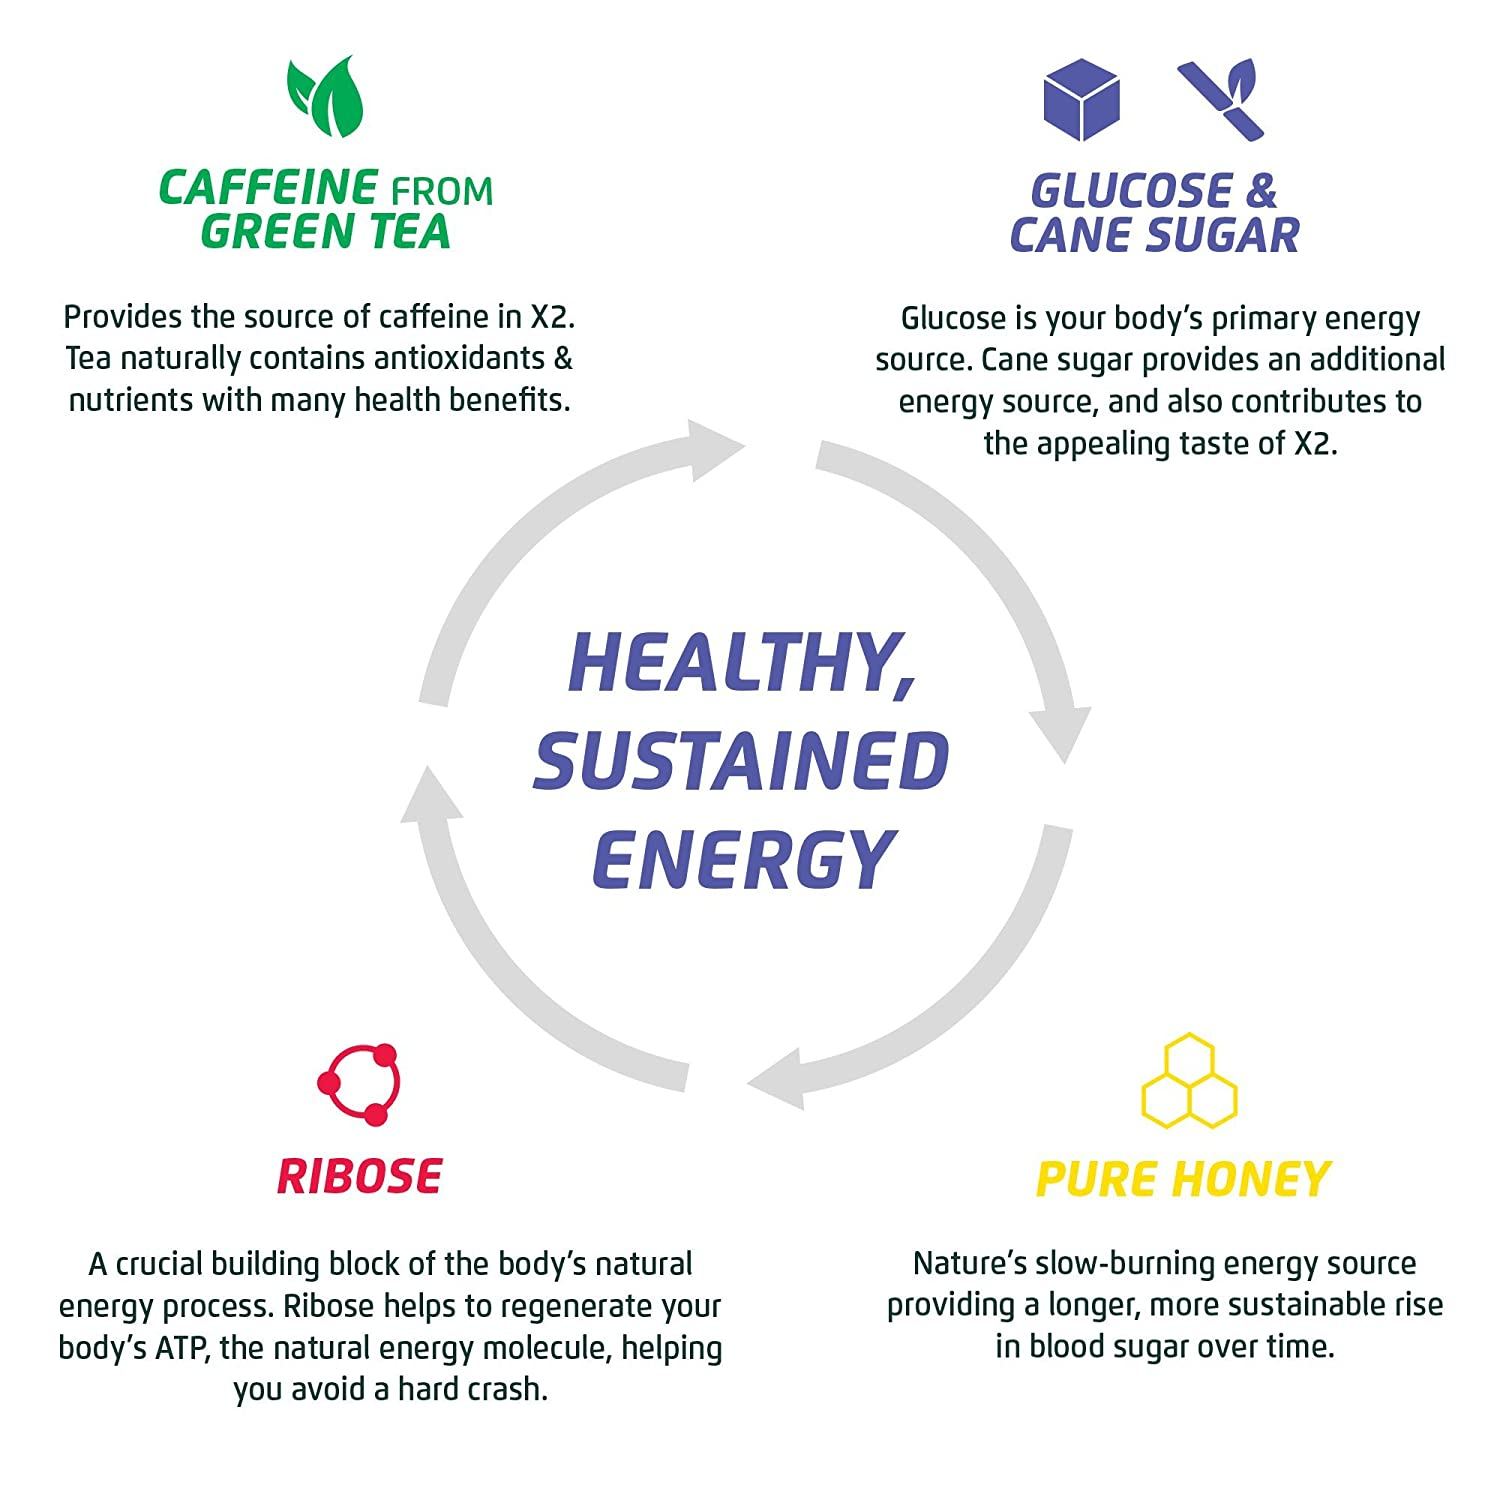 Amazon.com : X2 All Natural Healthy Energy Drink: Non-Carbonated Low Calorie Energy Beverage with No Crash or Jitters - 9 Grams of Sugar, 40 Calories - No ...